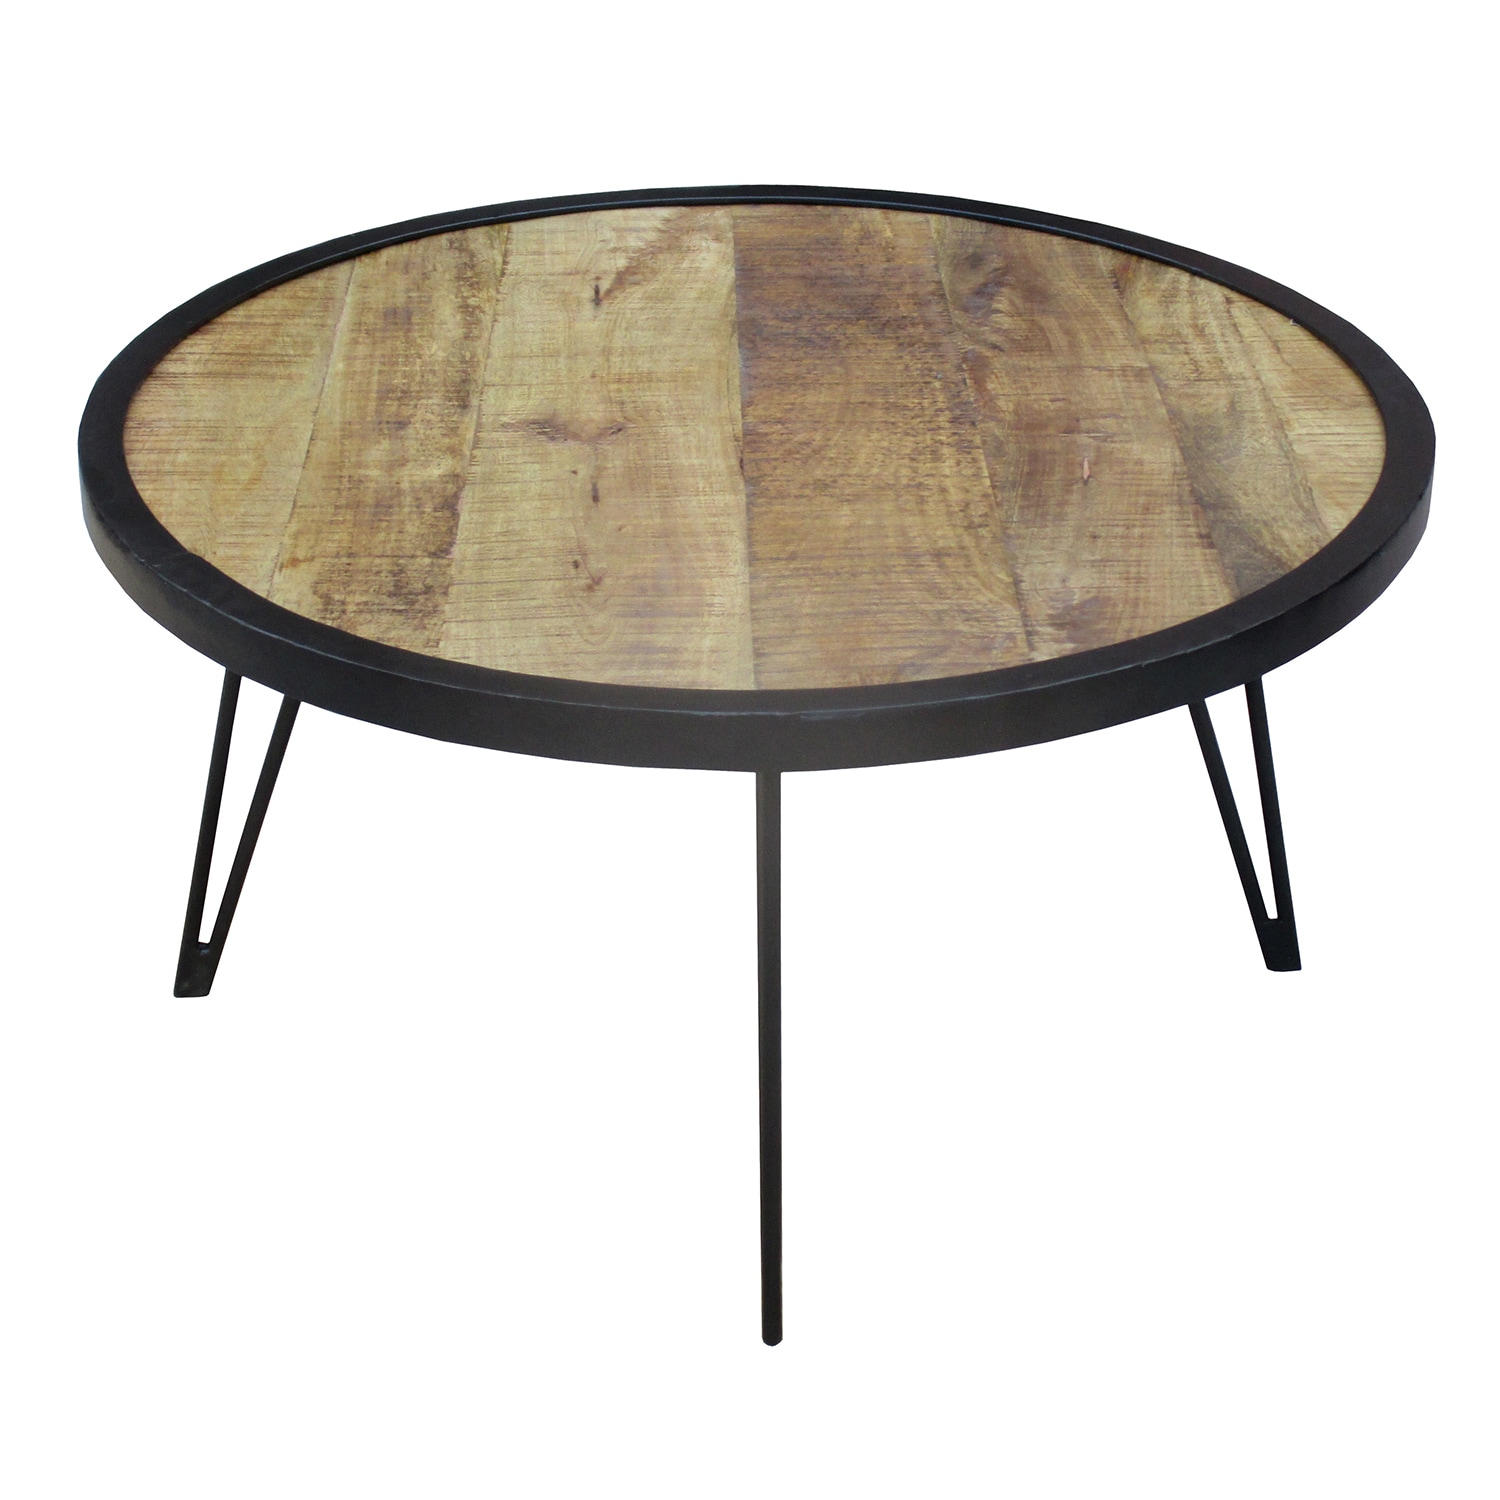 Shop timbergirl reclaimed wood round coffee table free shipping today overstock com 11210599